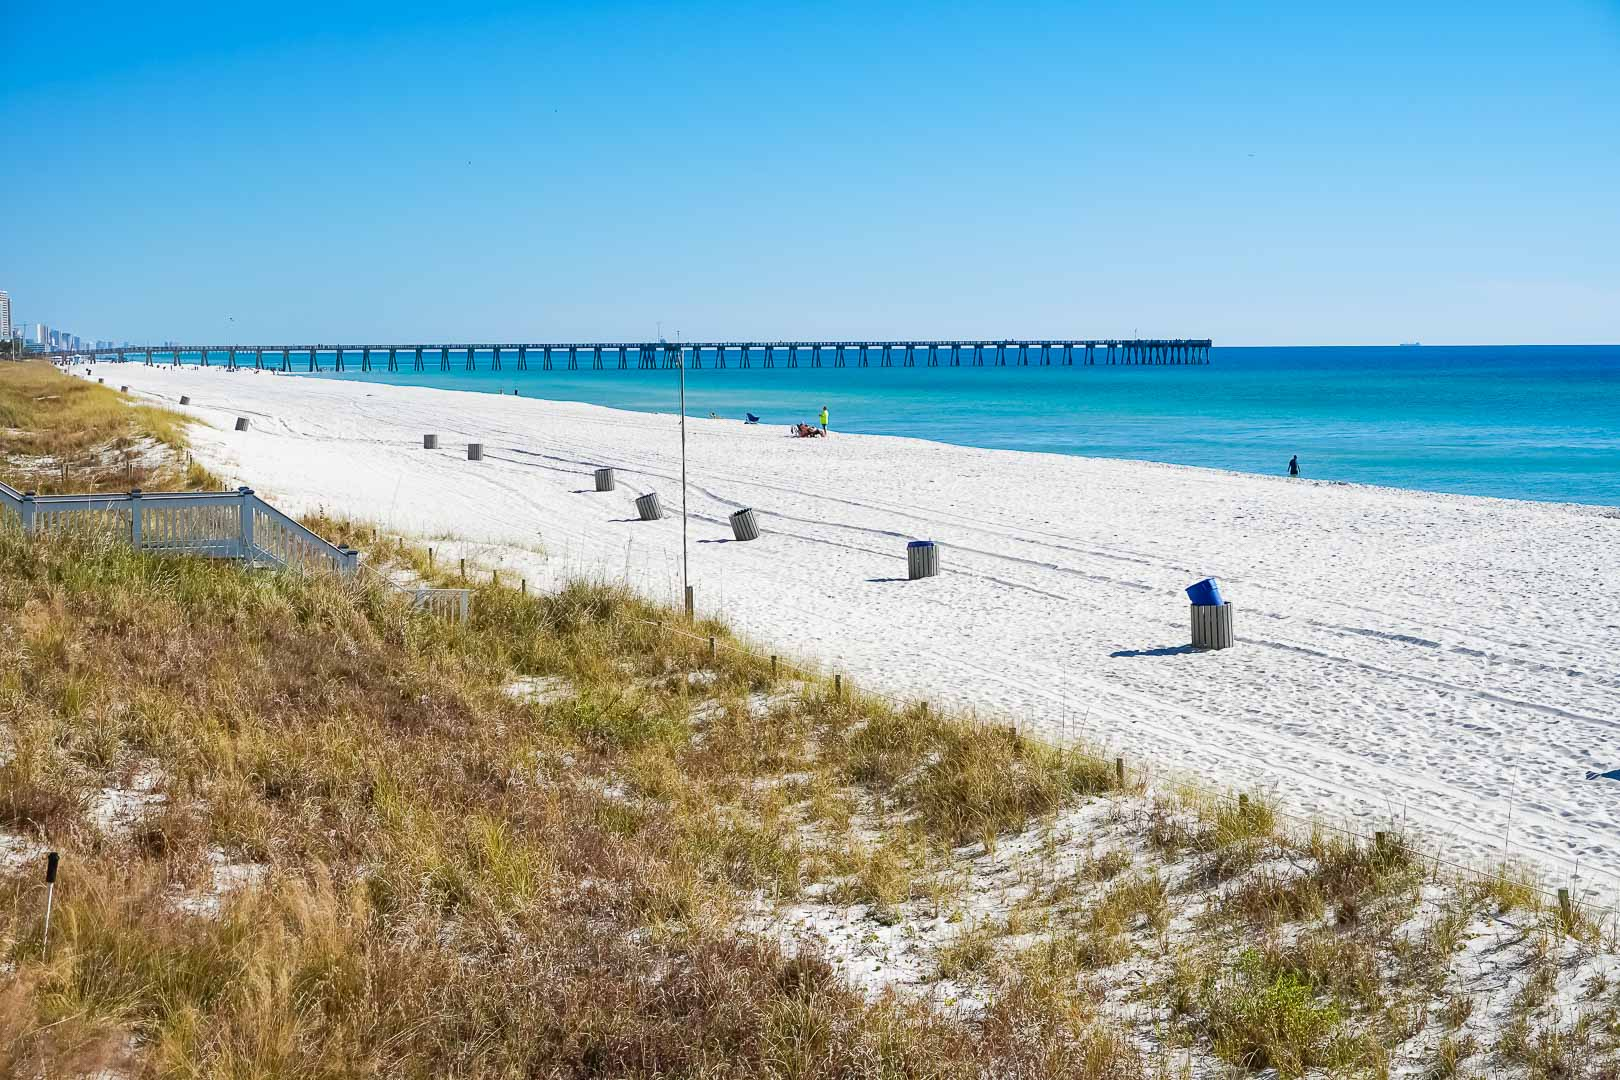 A scenic view with beach access at VRI's Panama City Resort & Club in Florida.